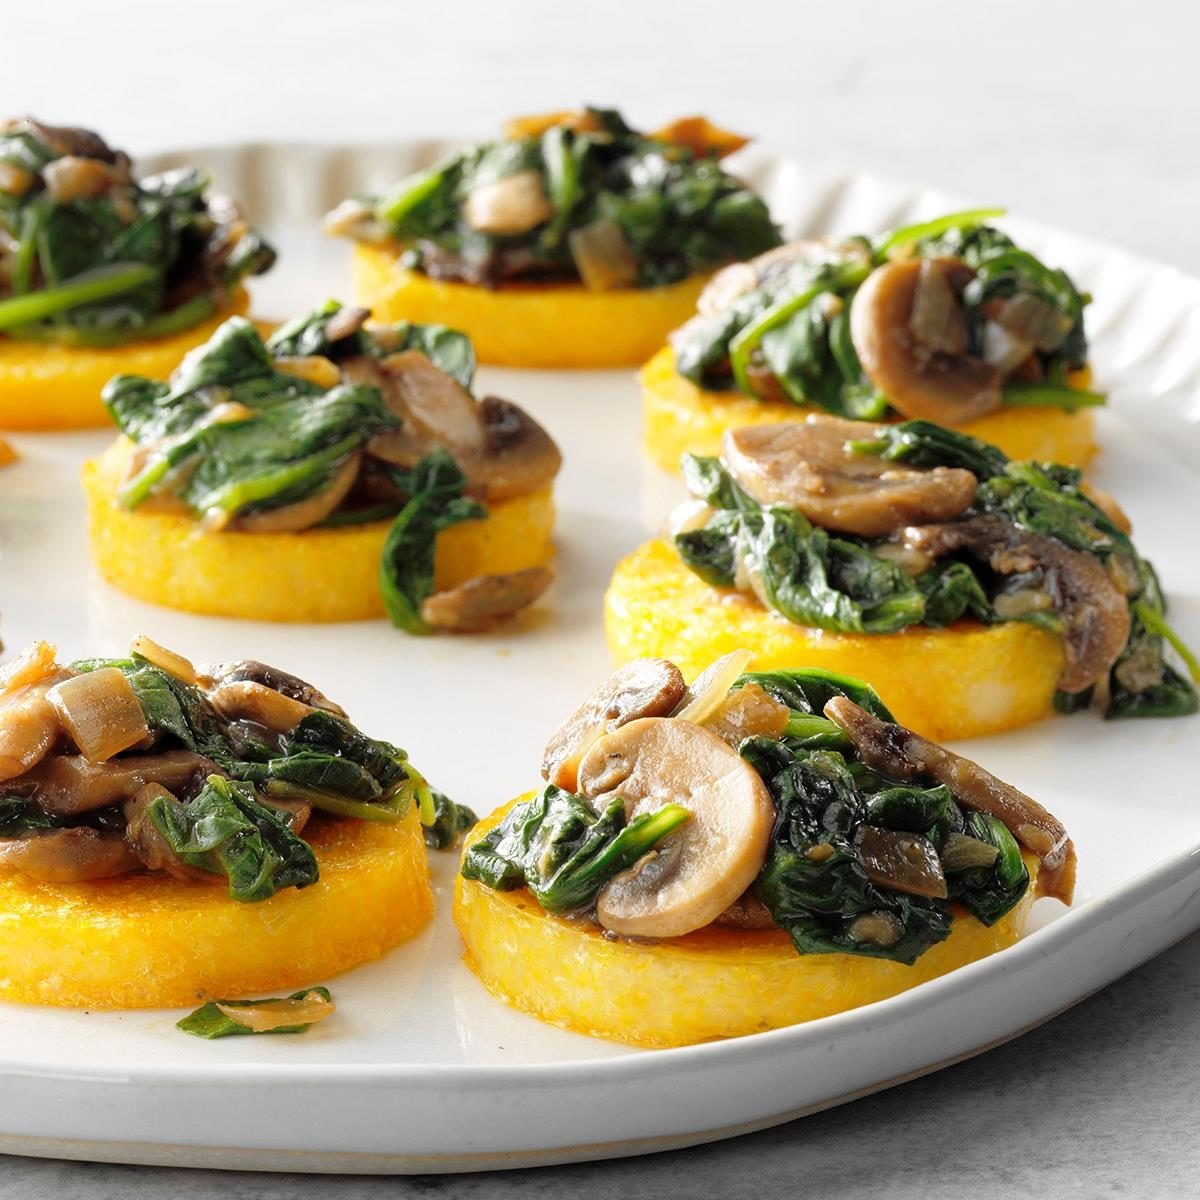 Vegan Polenta with Mushrooms and Spinach